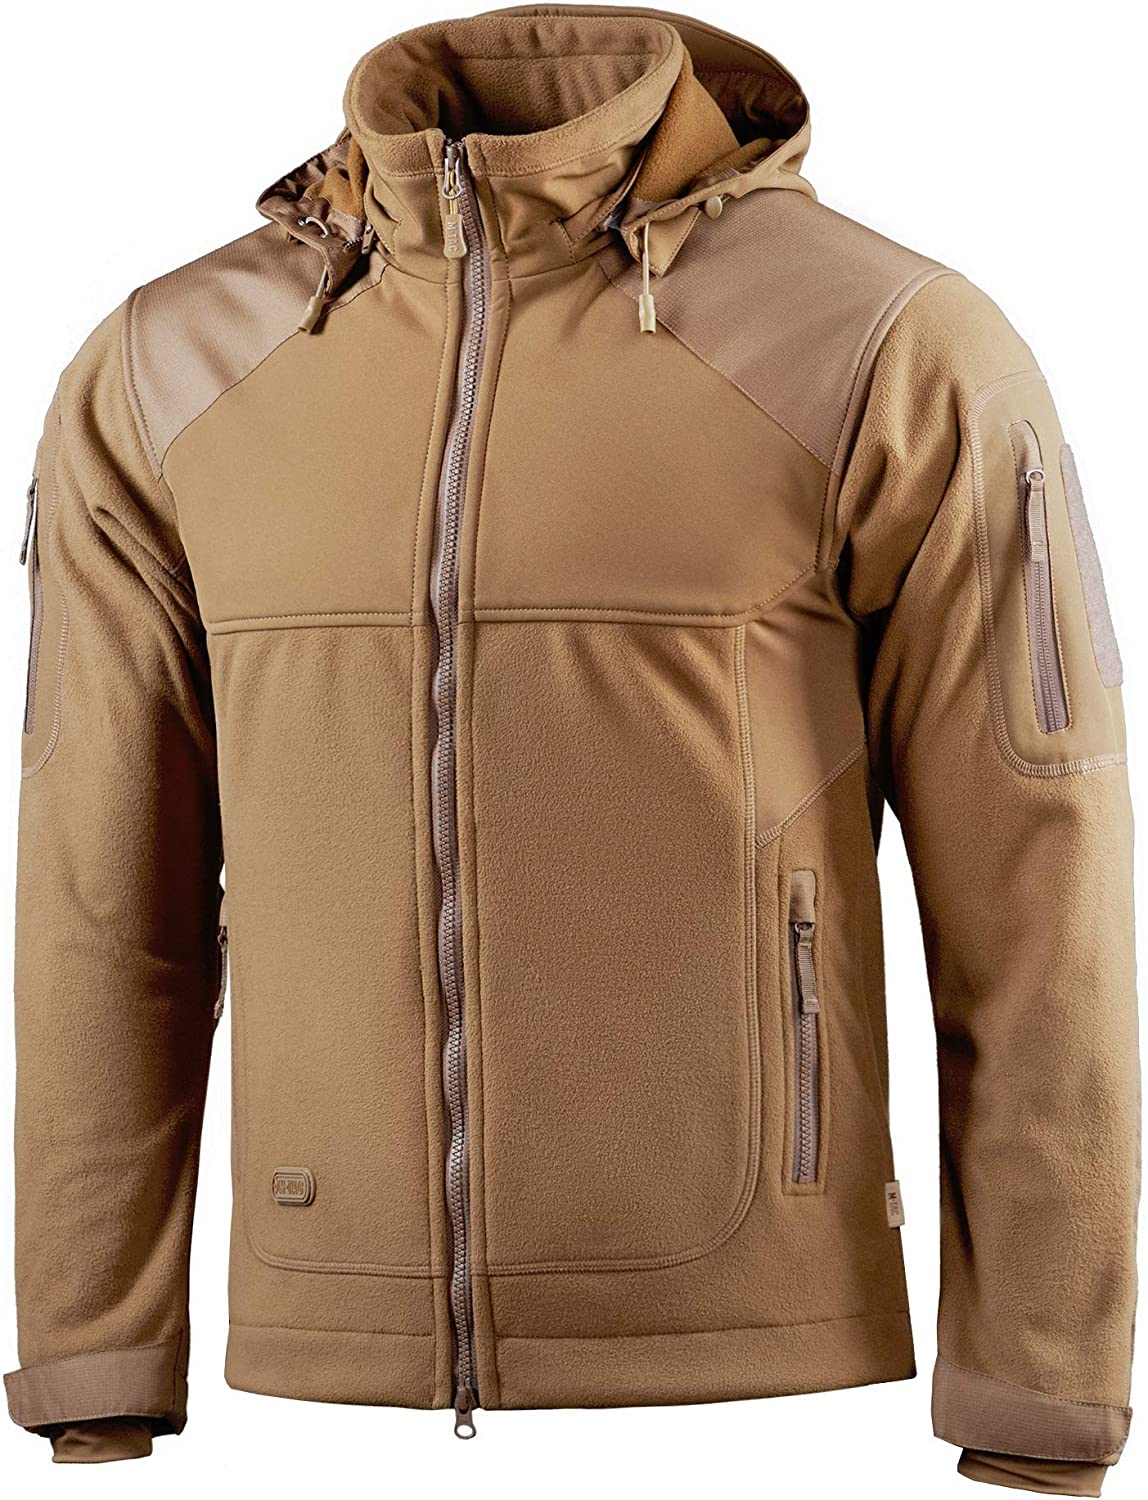 M-Tac Fleece Windblock Special Finally resale start price for a limited time Jacket Outdoor Warm Hooded Soft Shell